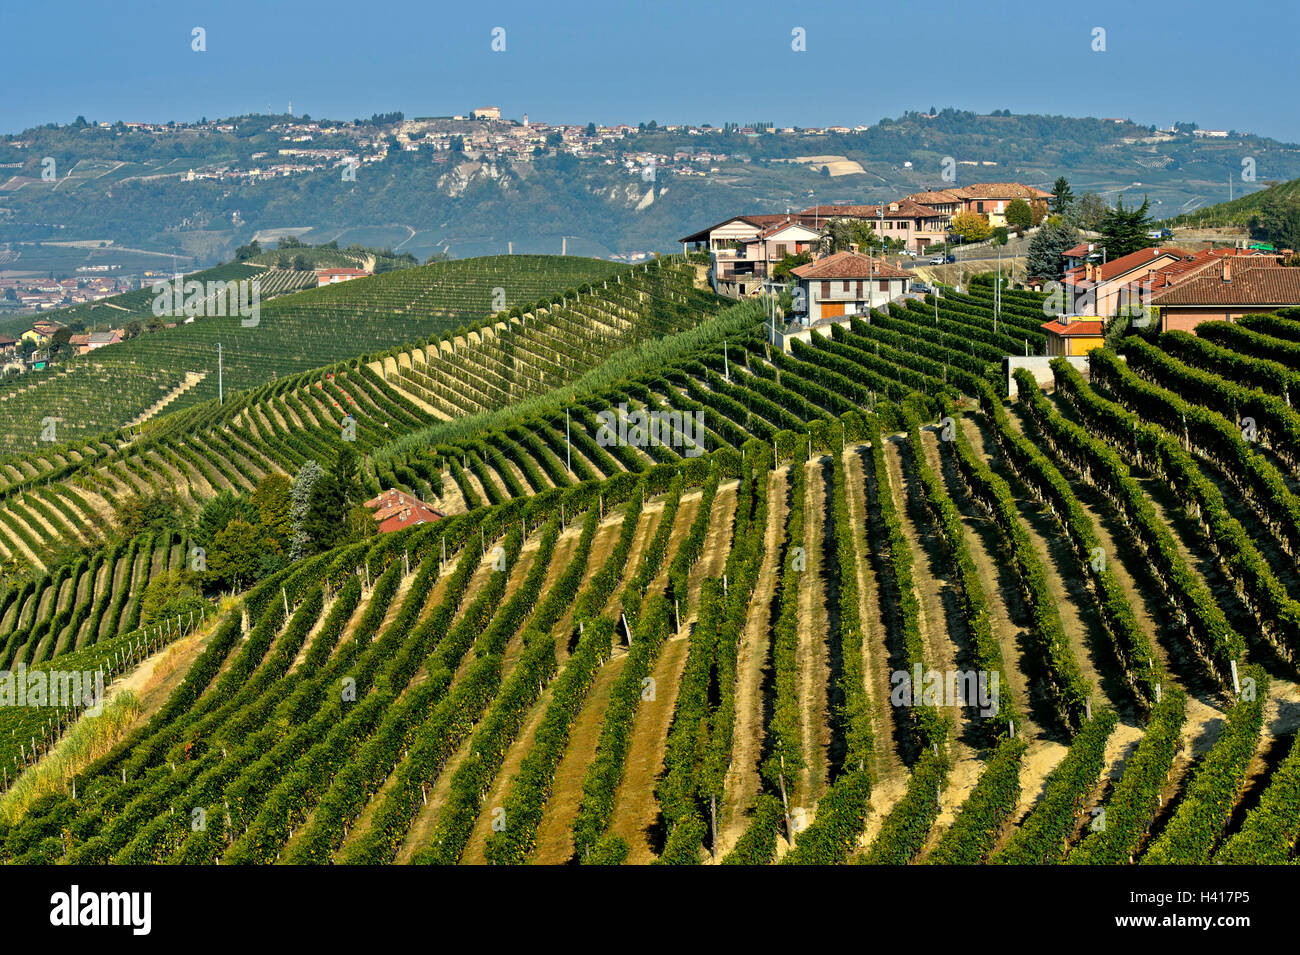 Vineyards of Nebbiolo grapes for Barbaresco red wine on hilltops, Treiso, Piedmont, Italy - Stock Image